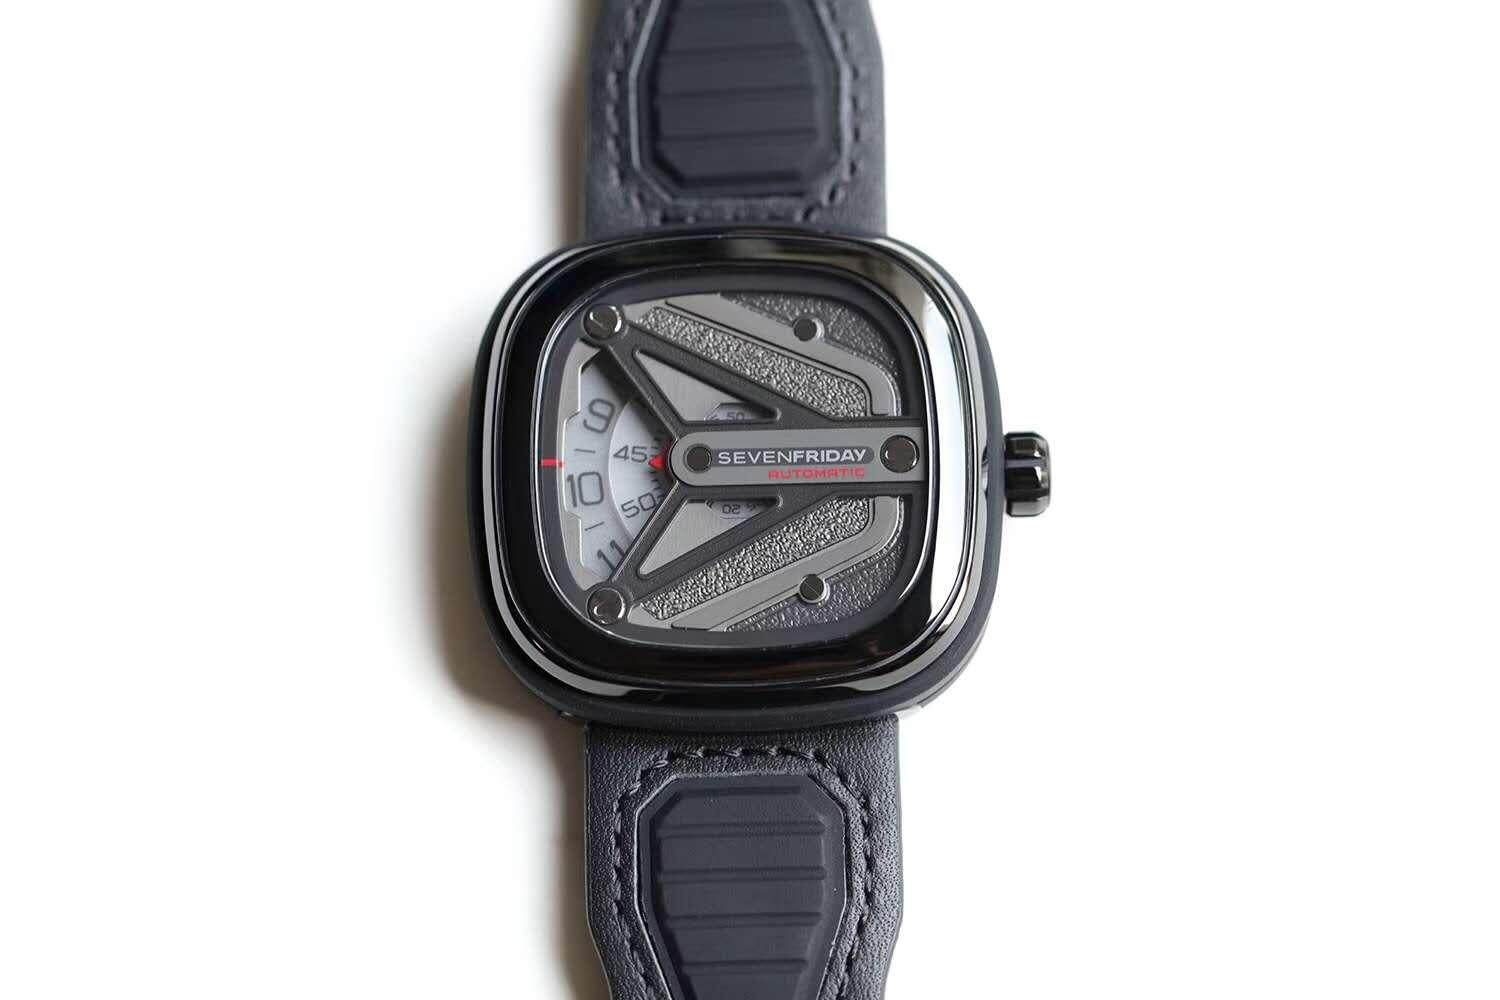 SEVEN FRIDAY M3/01 Men's Fashion Mechanical Watch Configuration tape and leather strap.